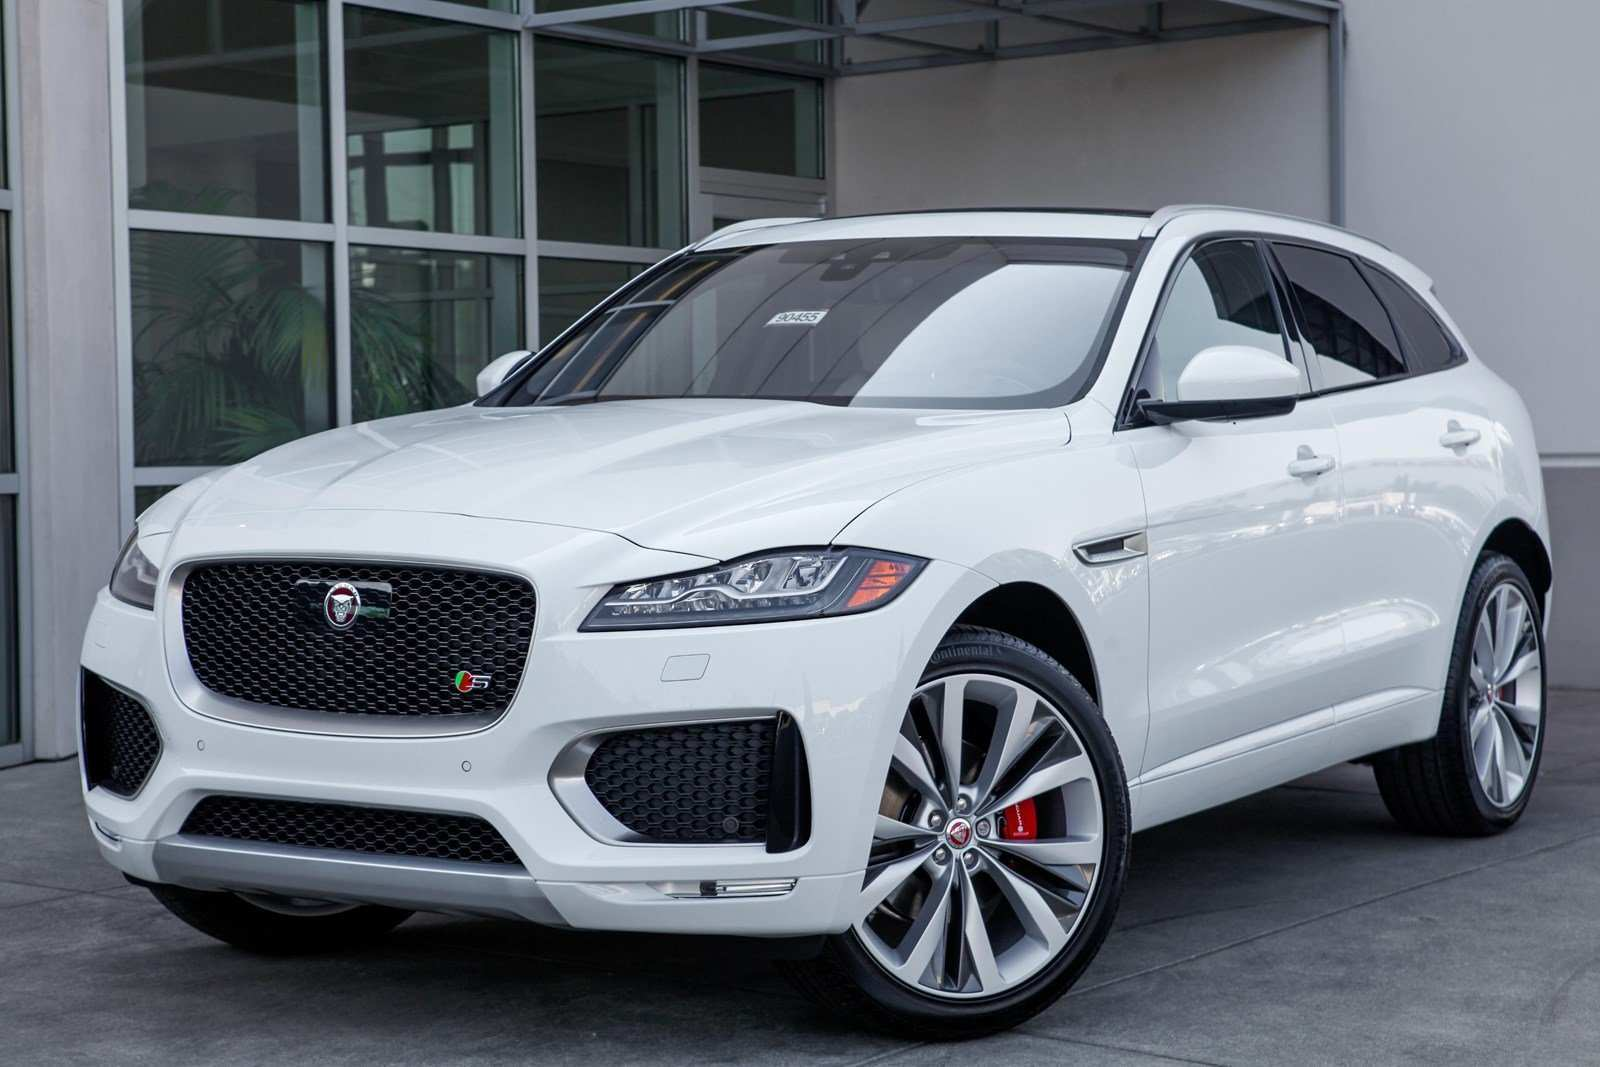 42 Best Review 2019 Jaguar Suv Exterior and Interior with 2019 Jaguar Suv